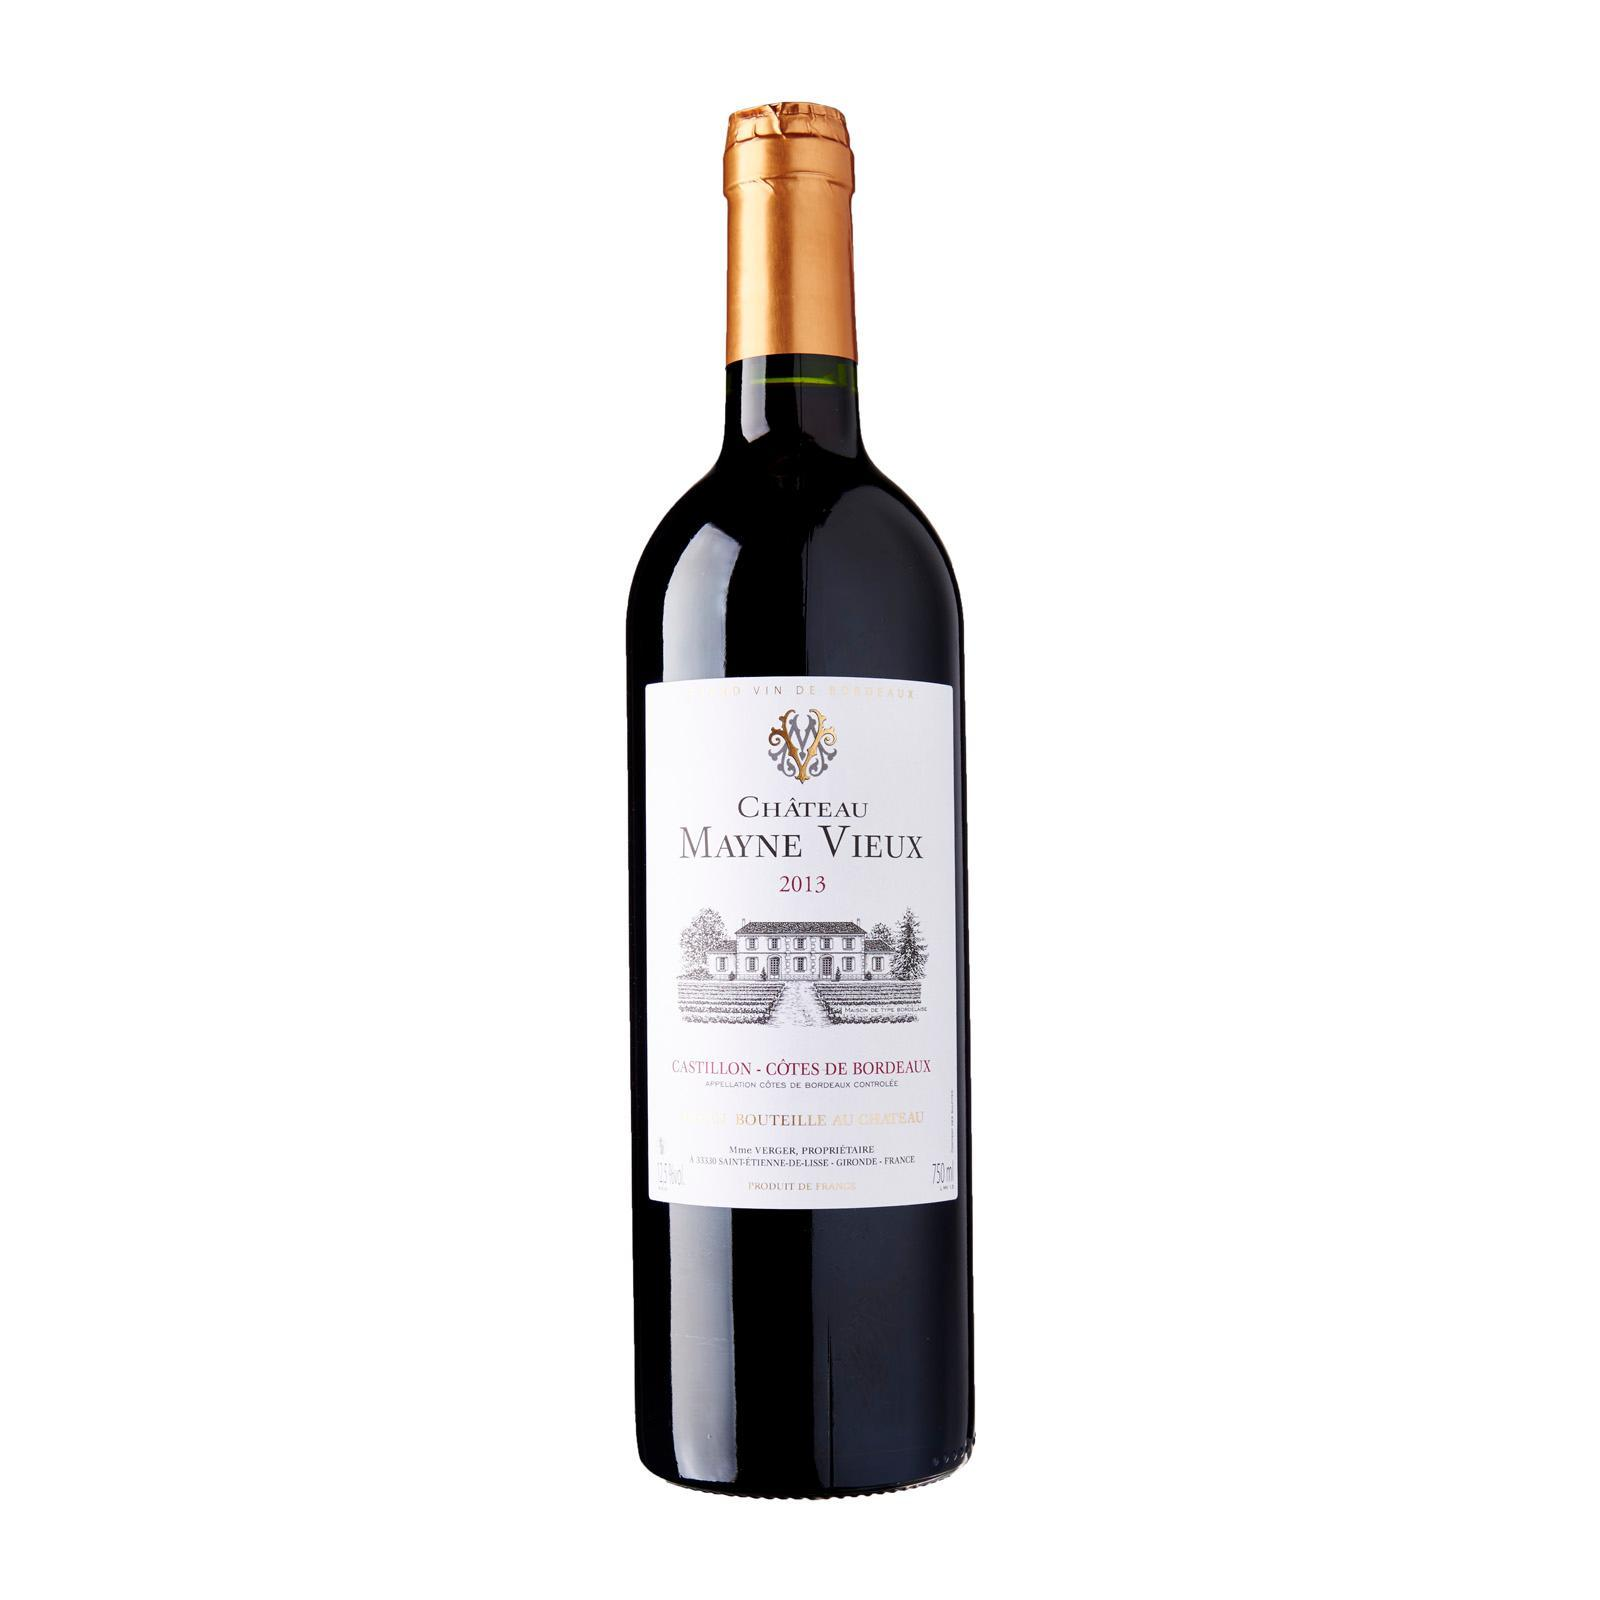 Chateau Mayne Vieux Bordeaux Red Wine - By V Wine Studio